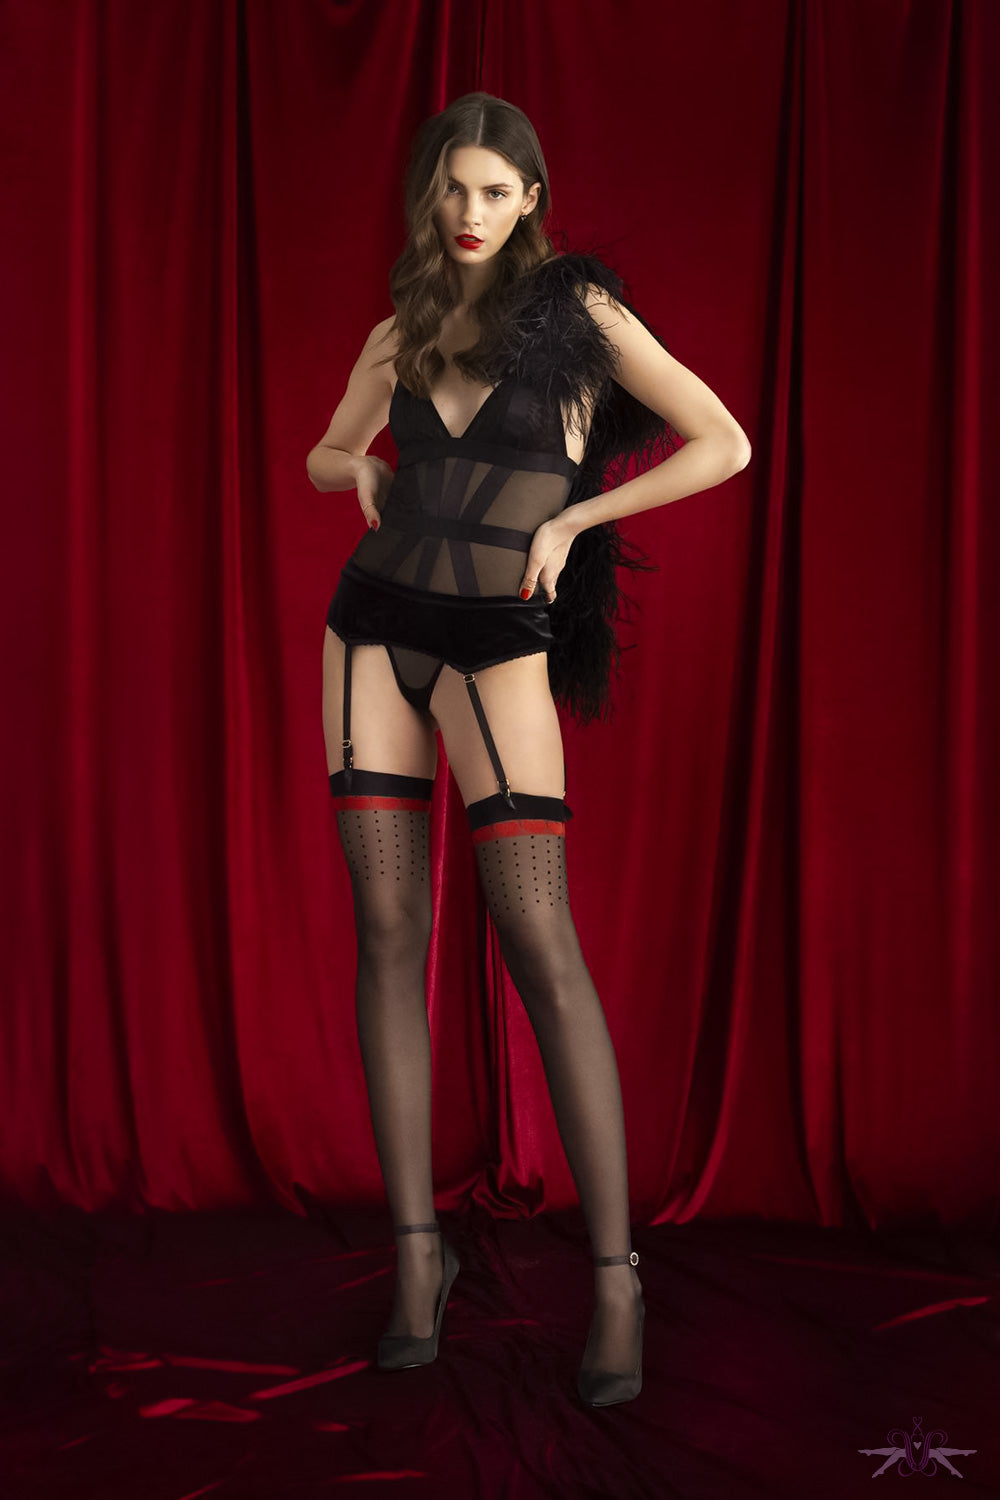 Fiore Sensual Lovely Stockings